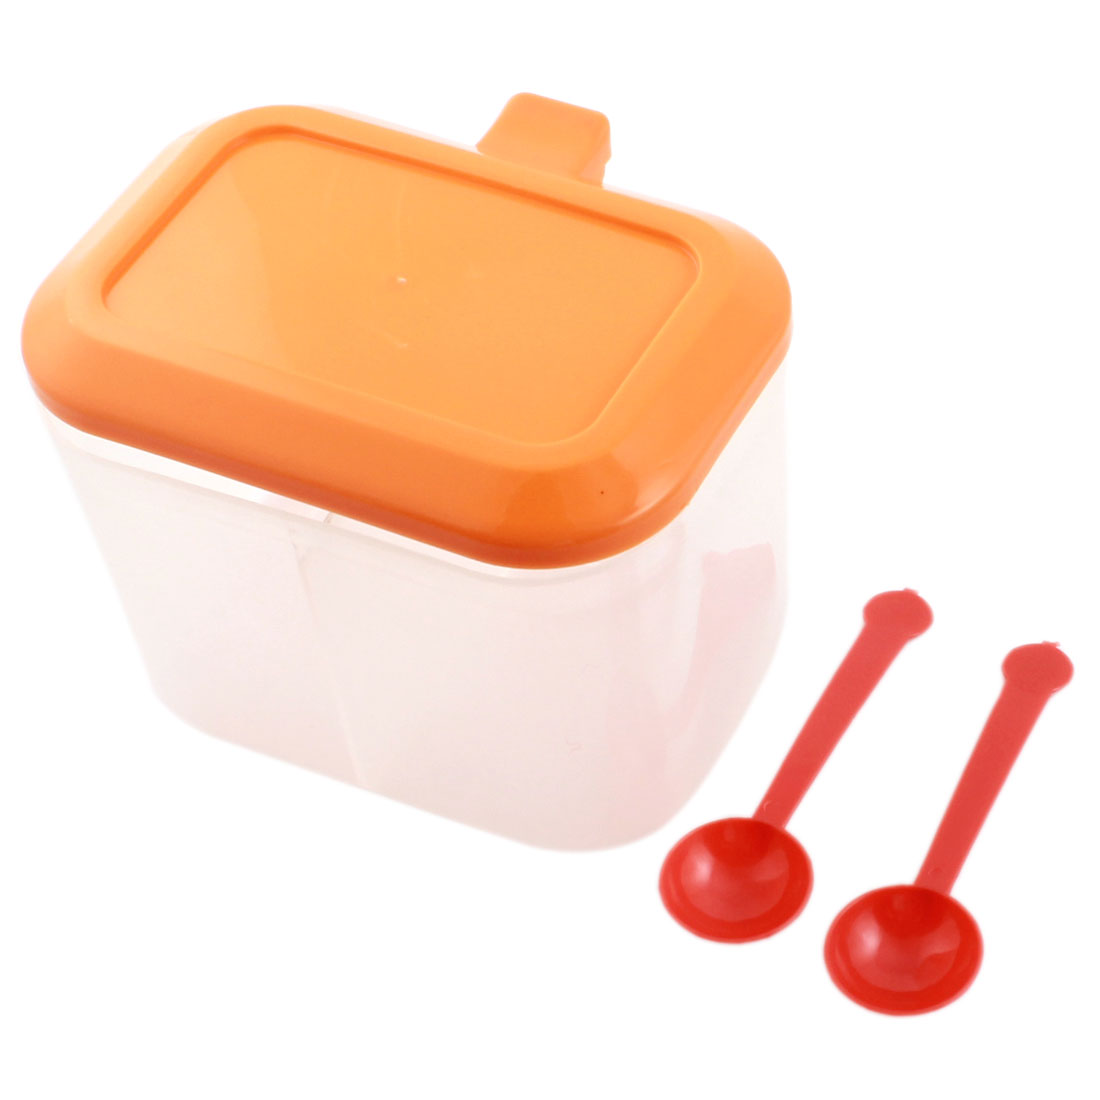 Orange Clear White Plastic Condiment Dispenser Holder 2 Compartments Spices Container Box